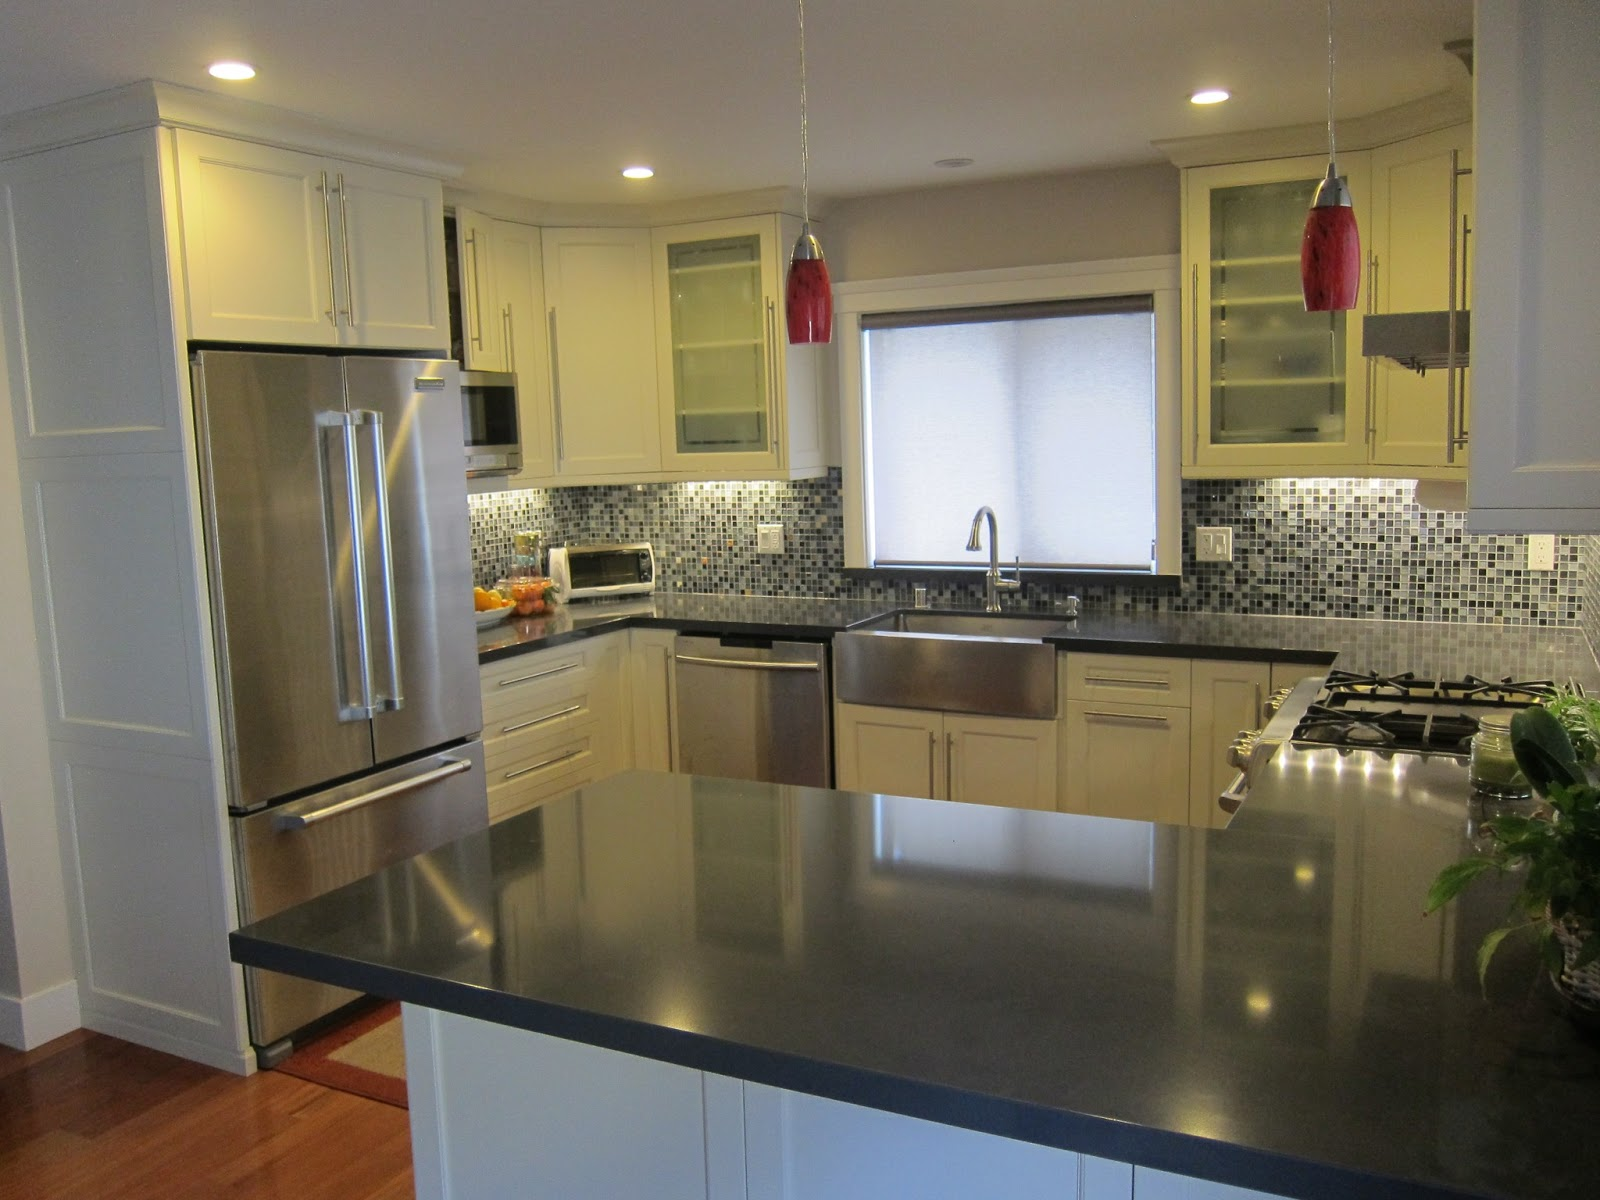 Glass Top Stove Stainless Steel Counter